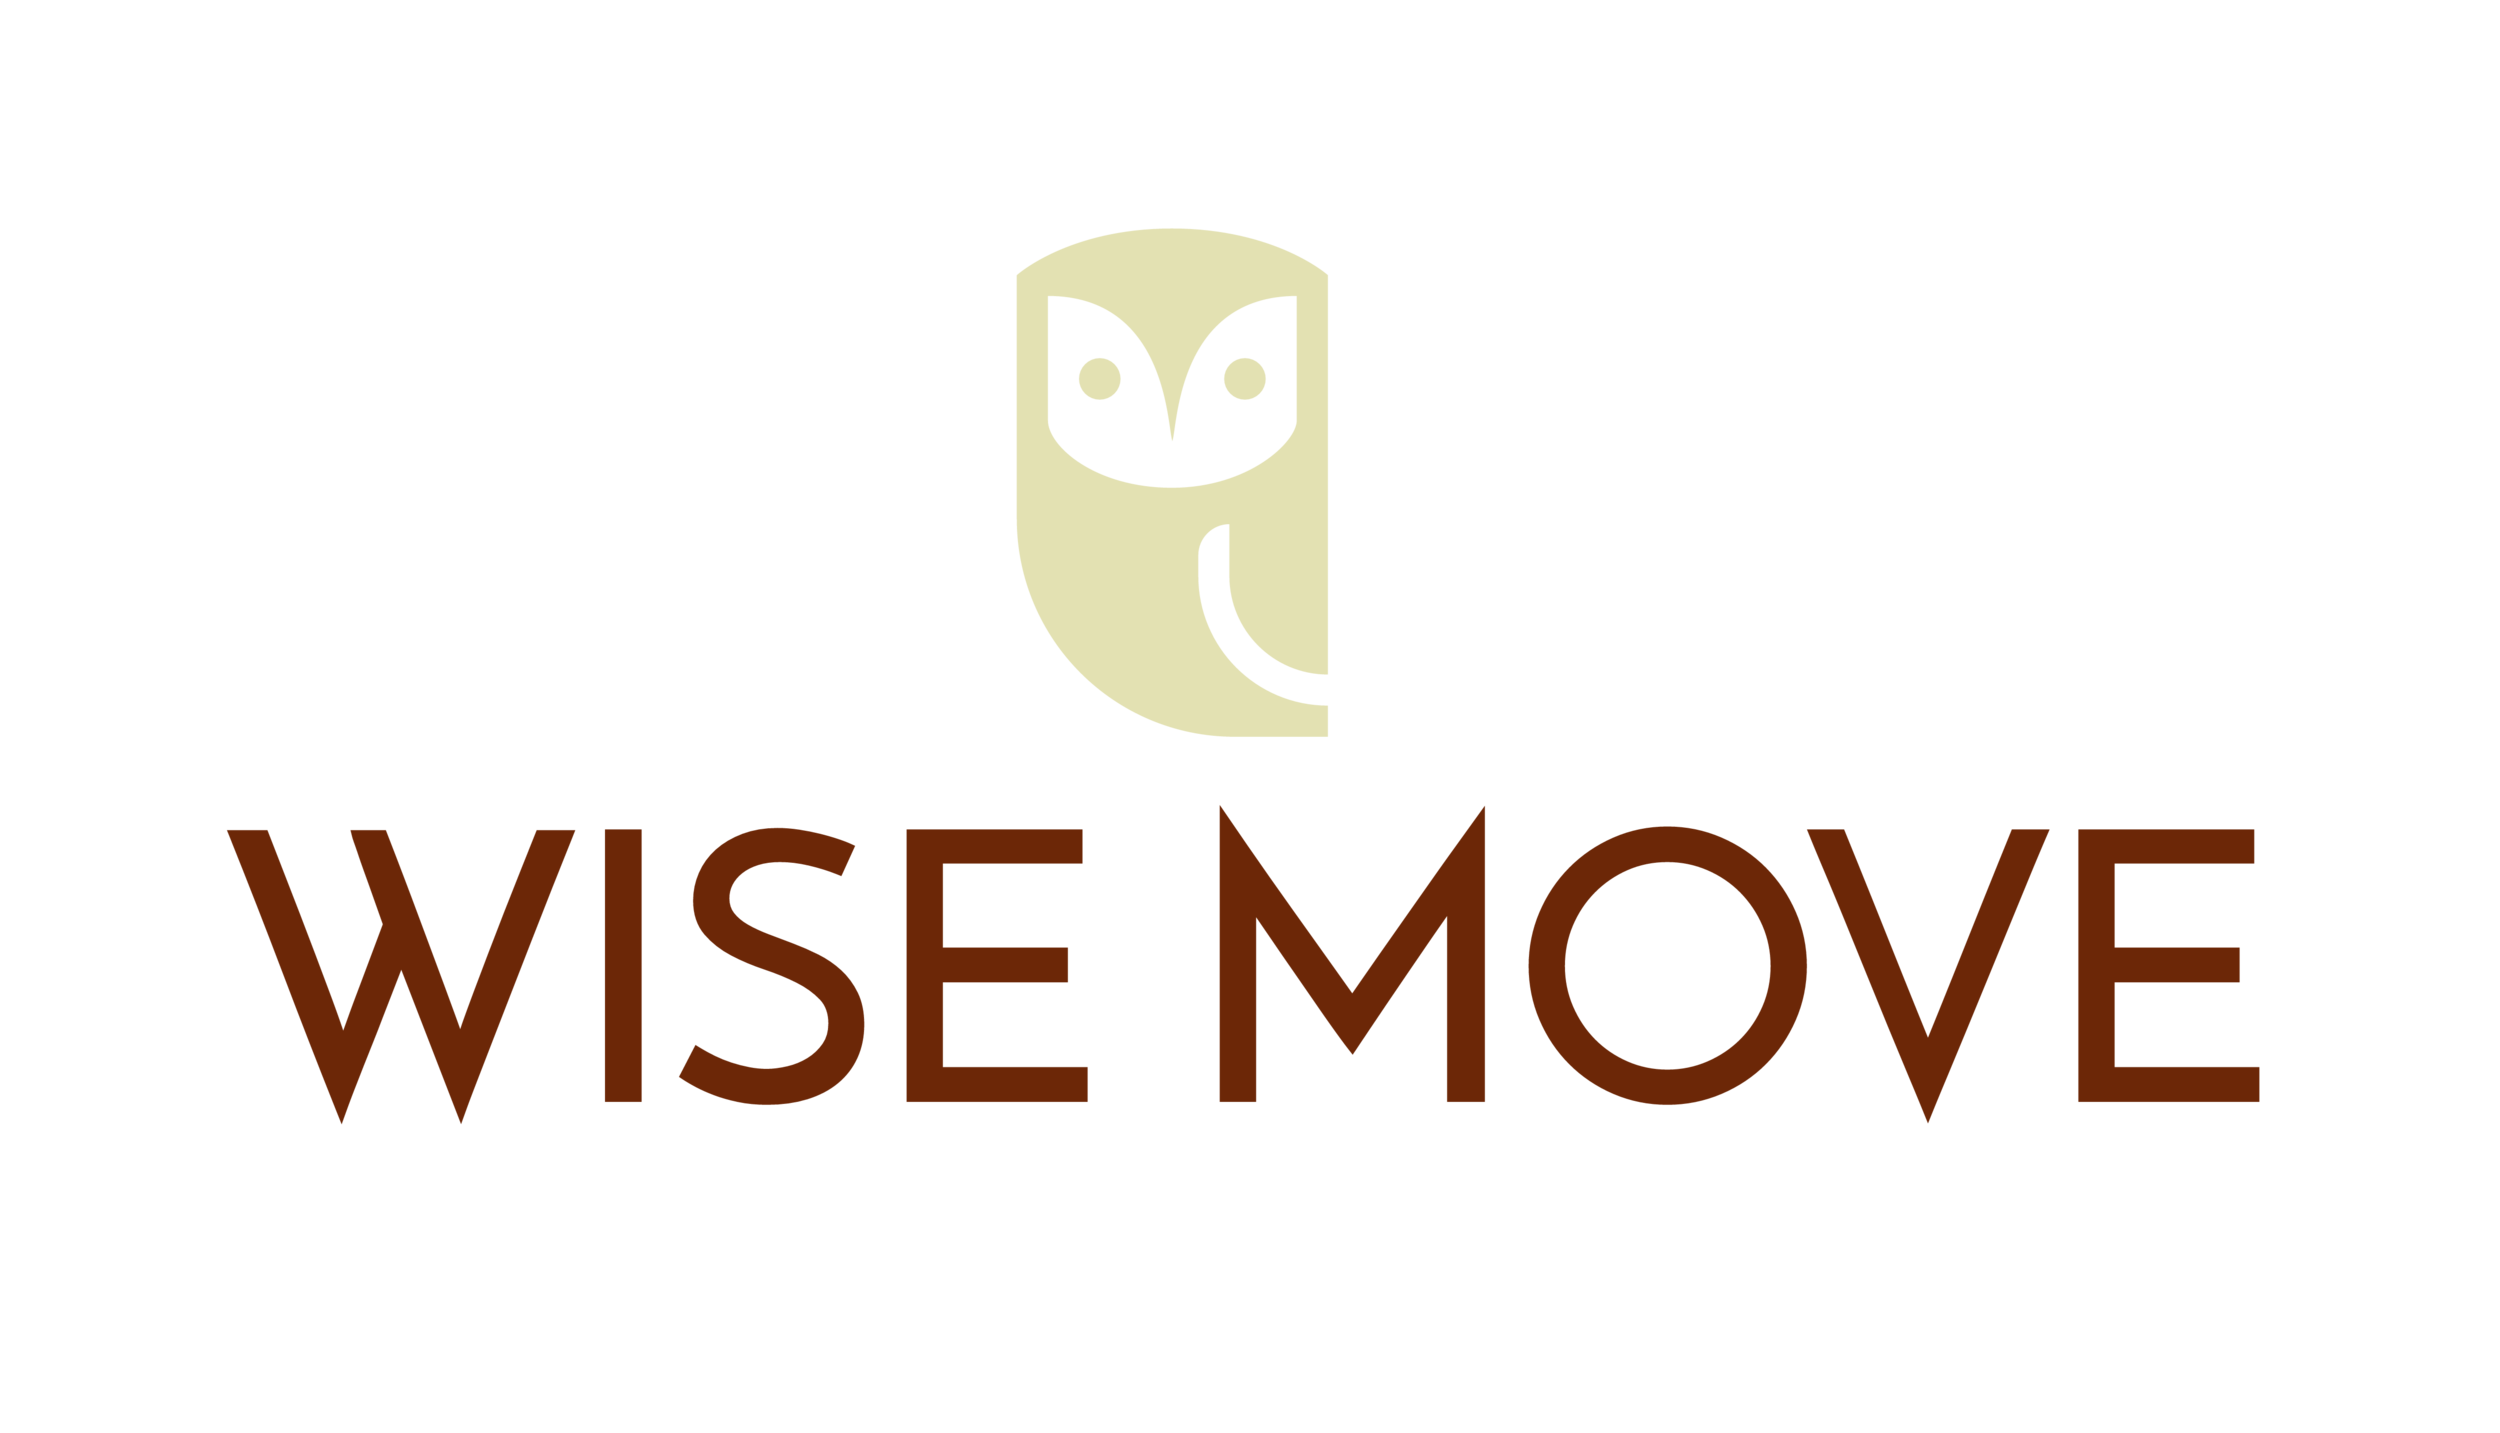 WISE MOVE-logo (4).png